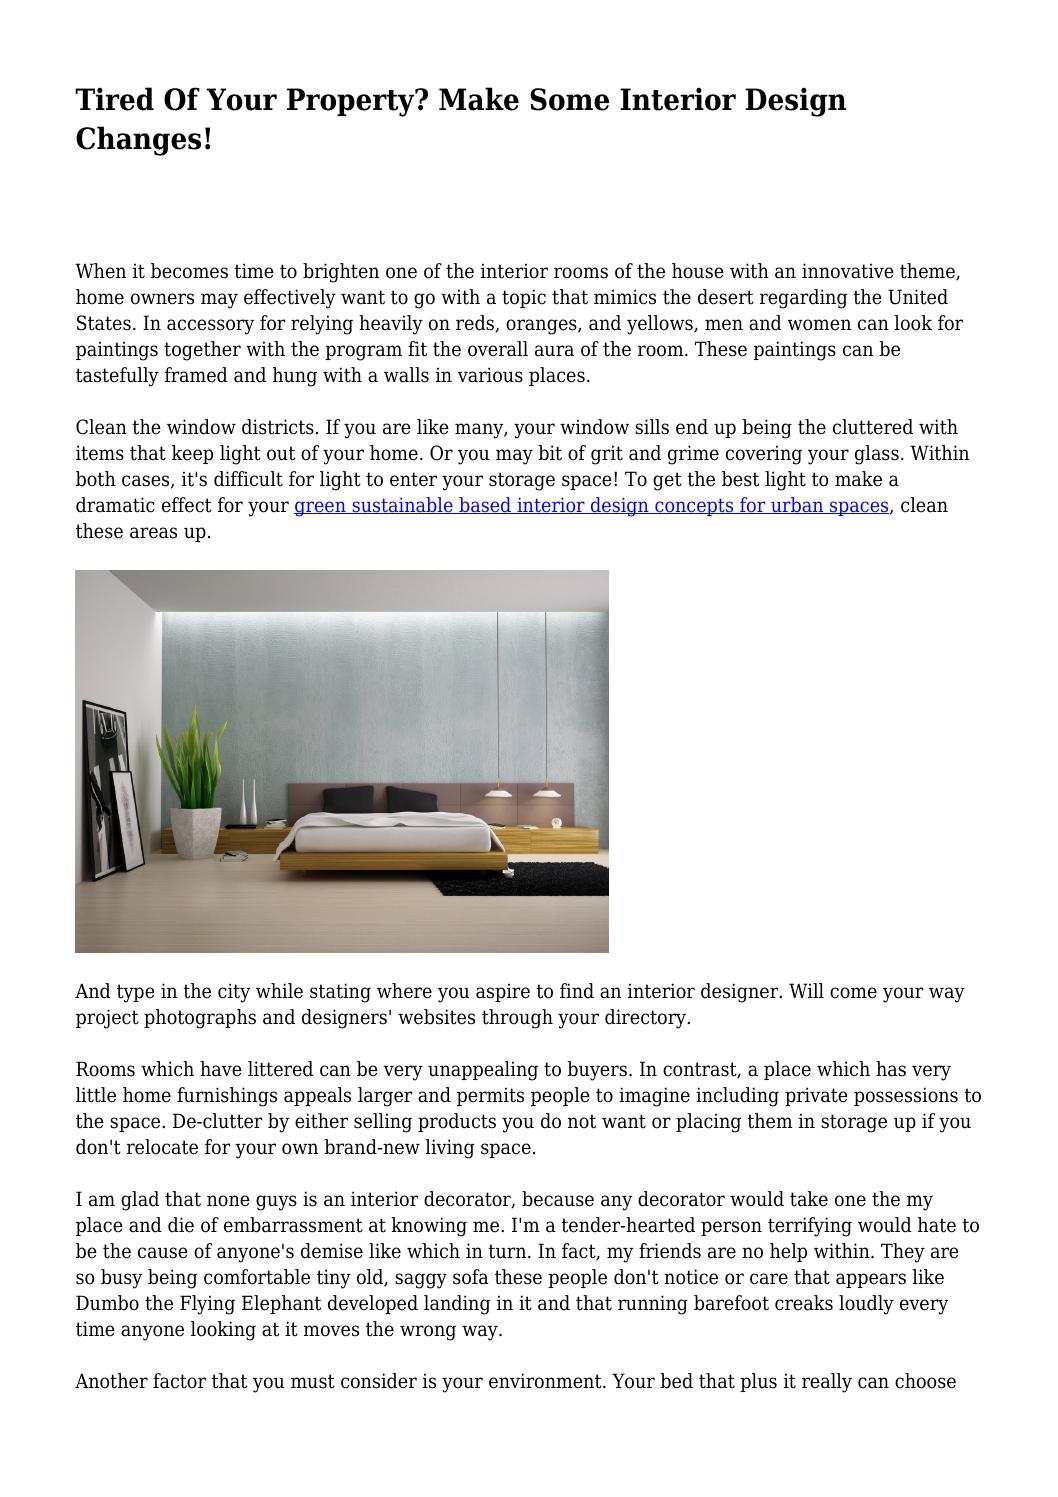 Make Some Interior Design Changes! by nonchalantbough70 - issuu